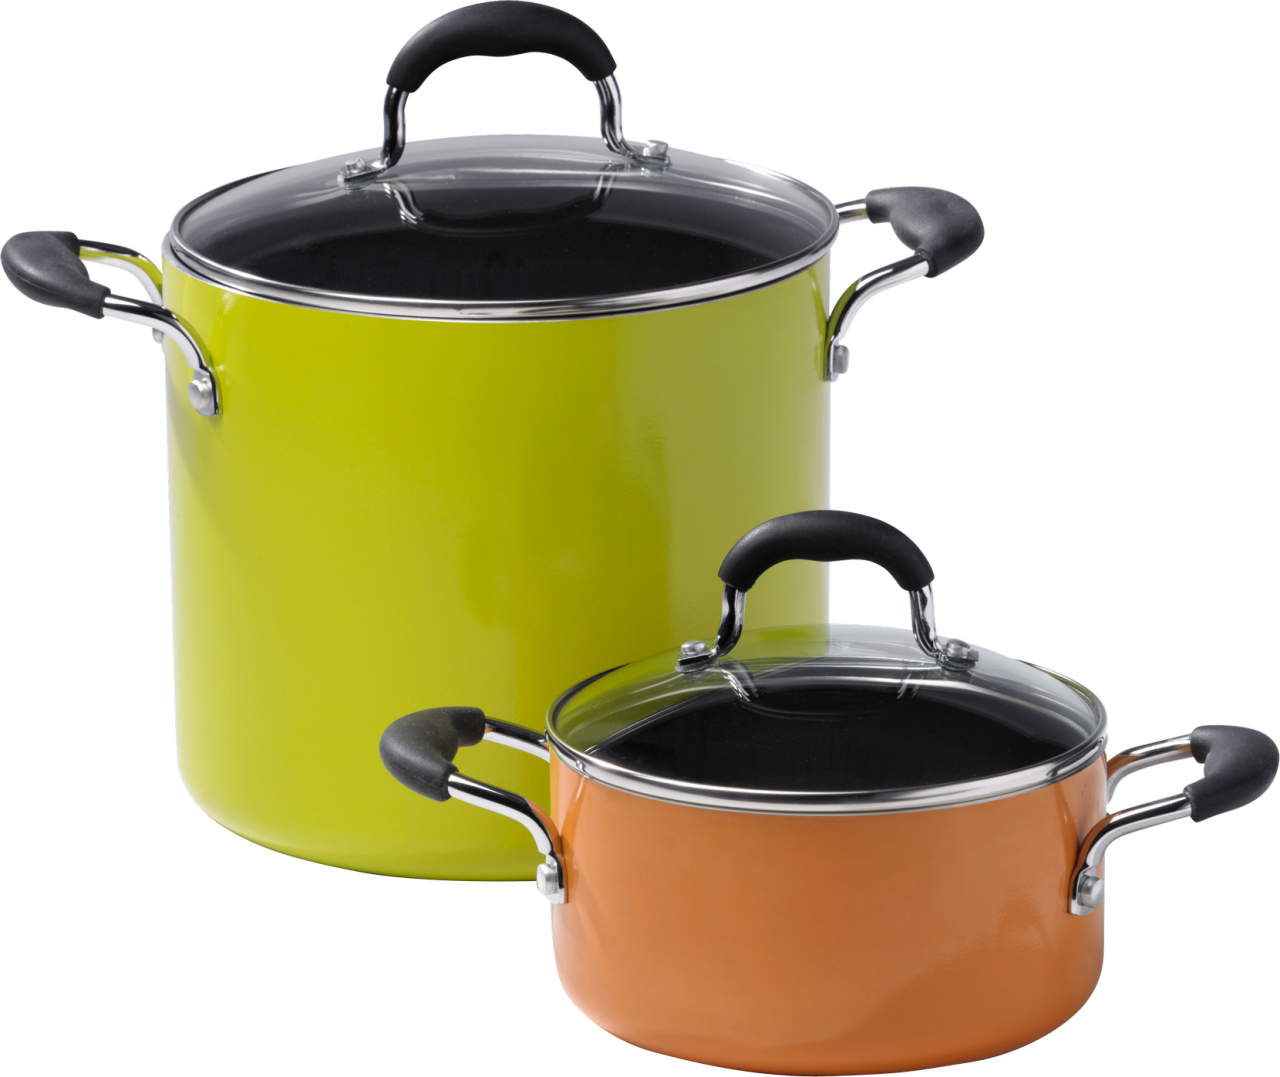 Cooking Pot PNG Image